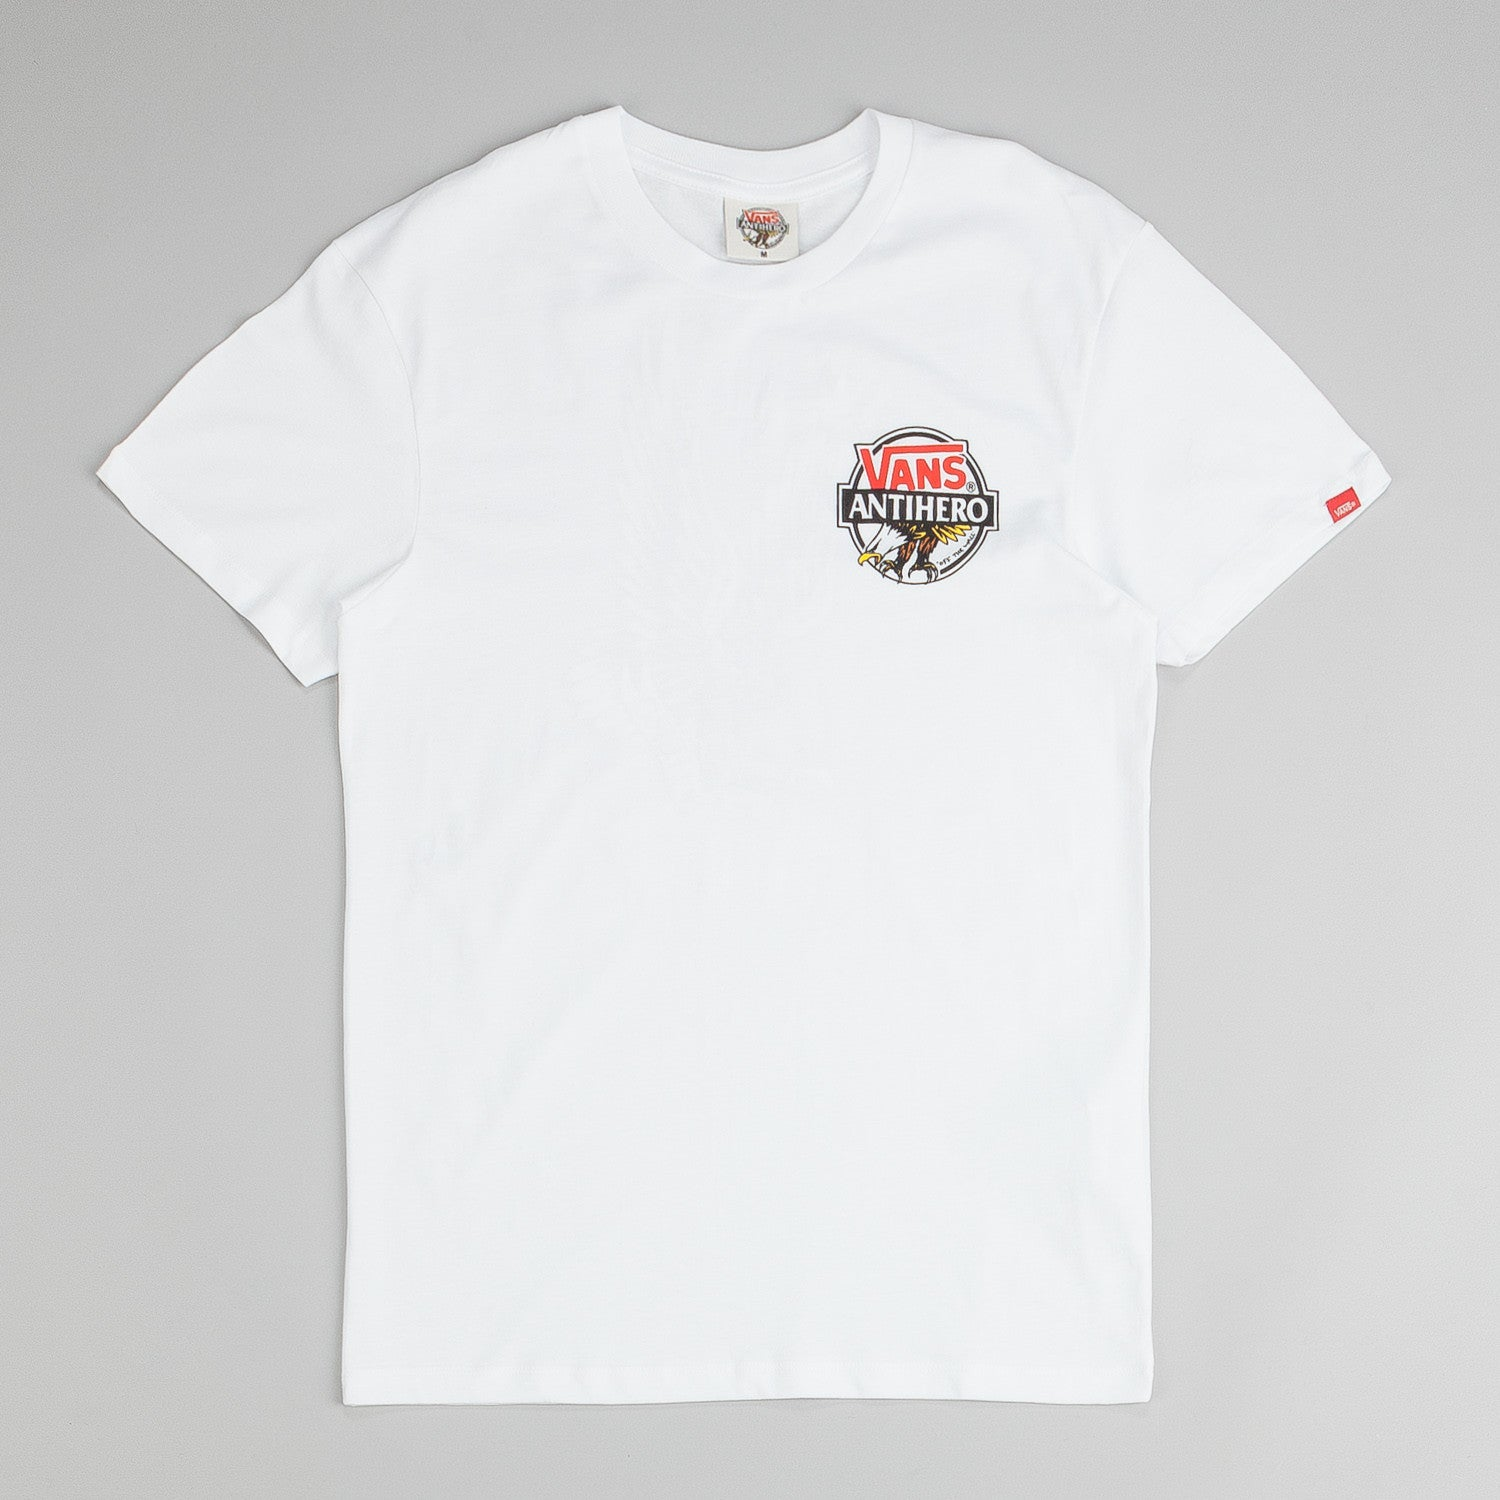 Vans X Anti Hero T-Shirt